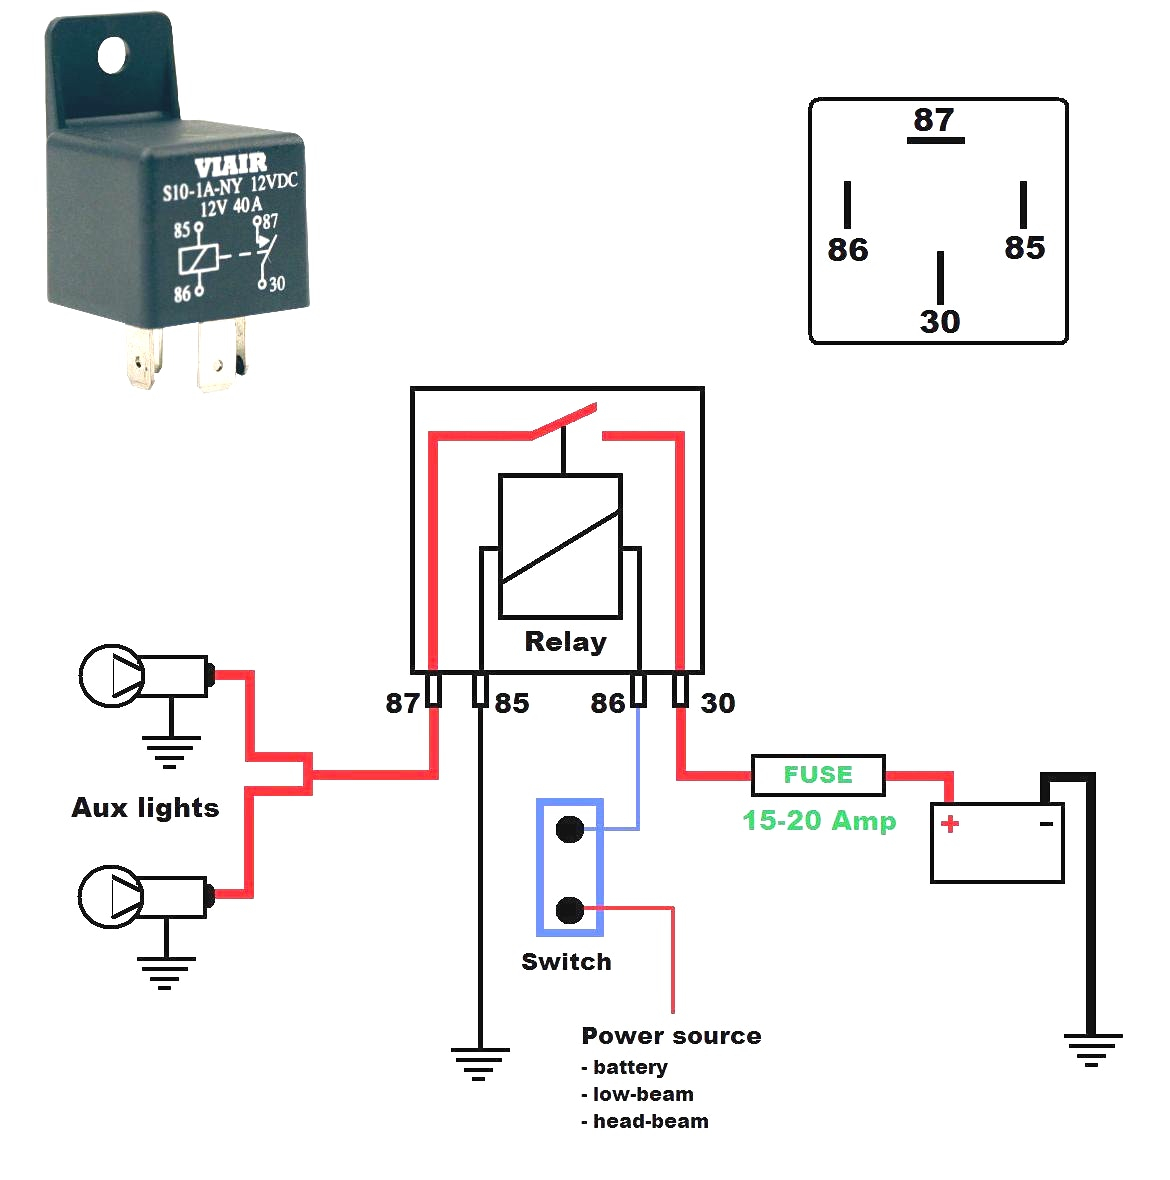 12v relay wiring diagram spotlights Download-12V Relay Wiring Diagram Stylesync Me And Bosch 4-h